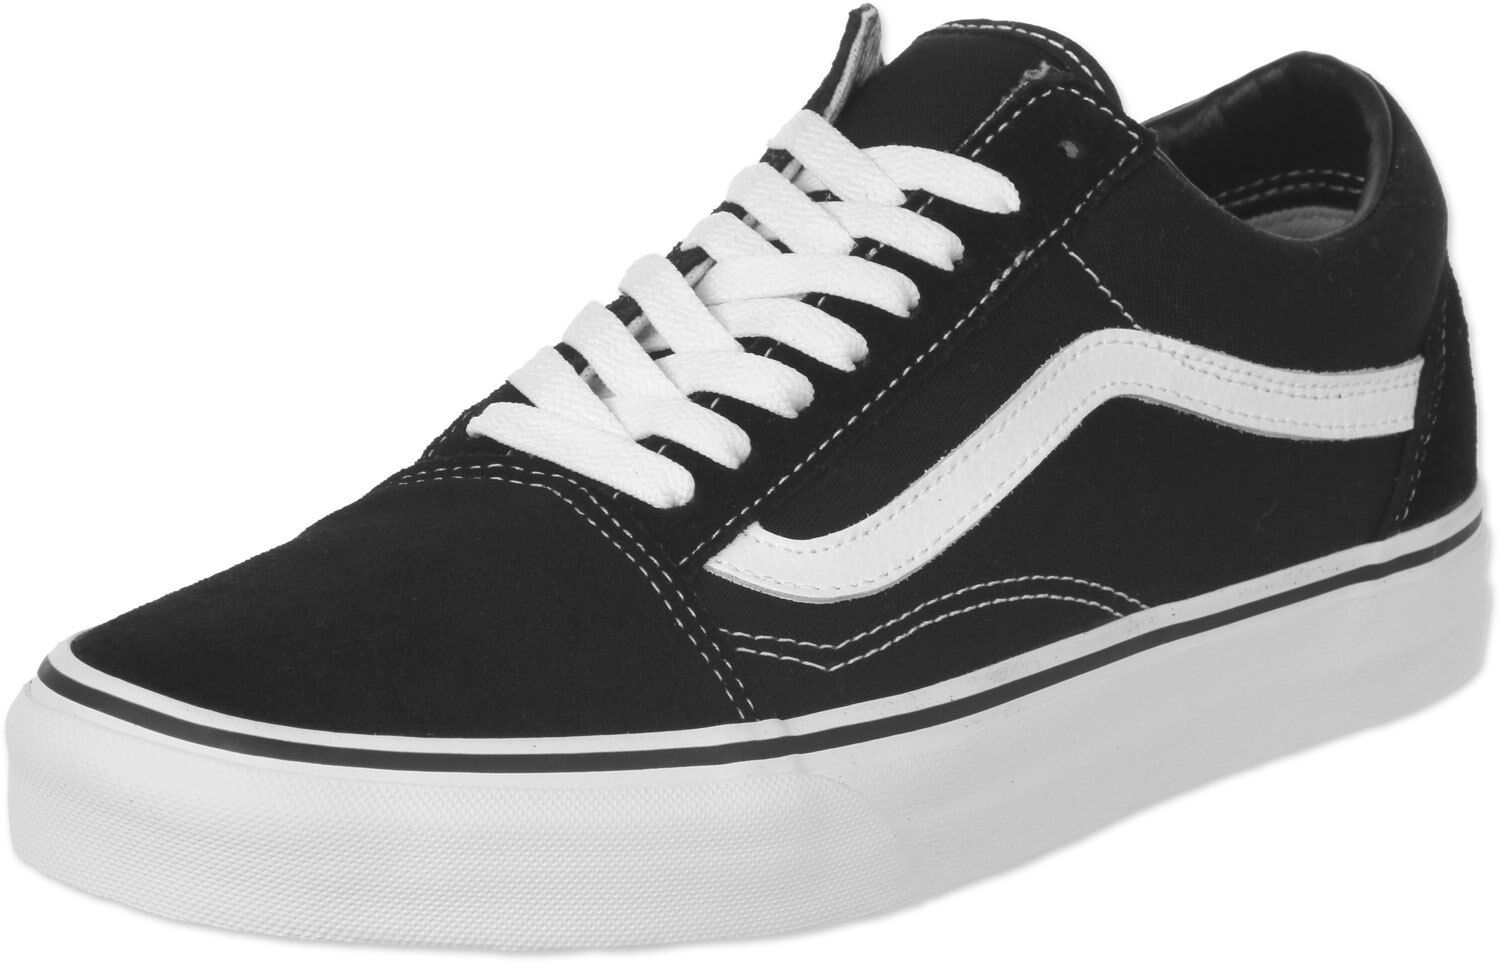 Vans Old Skool Black White Mens Womens Canvas Fashion Skate